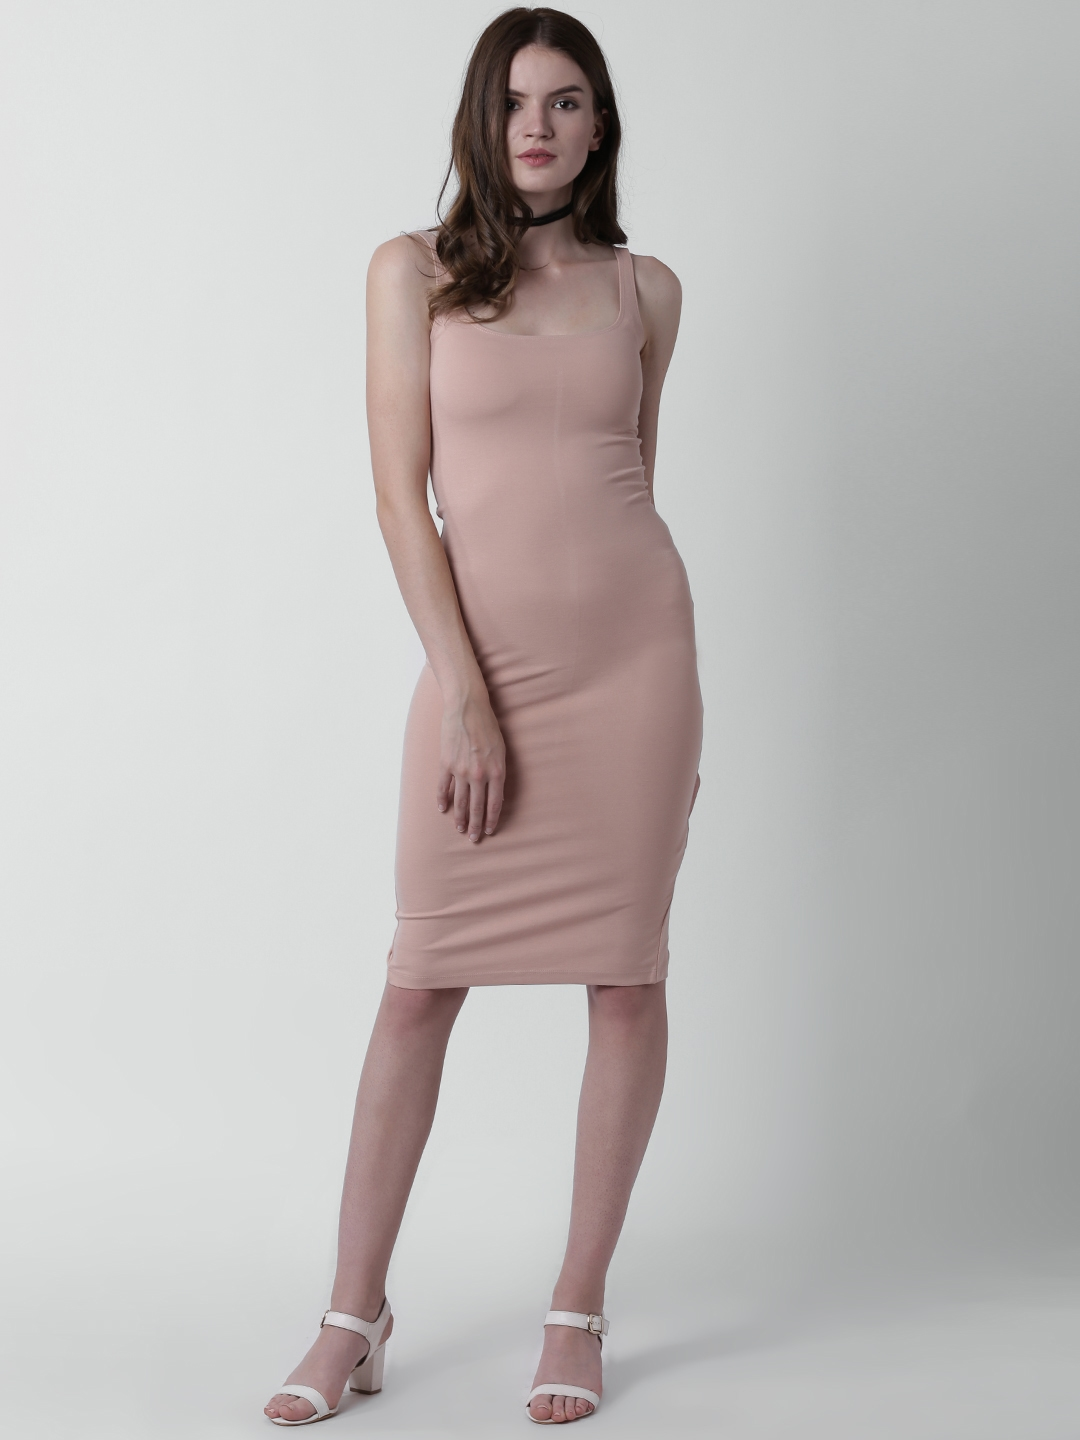 6533eaab893 Buy FOREVER 21 Women Dusty Pink Solid Bodycon Dress - Dresses for ...